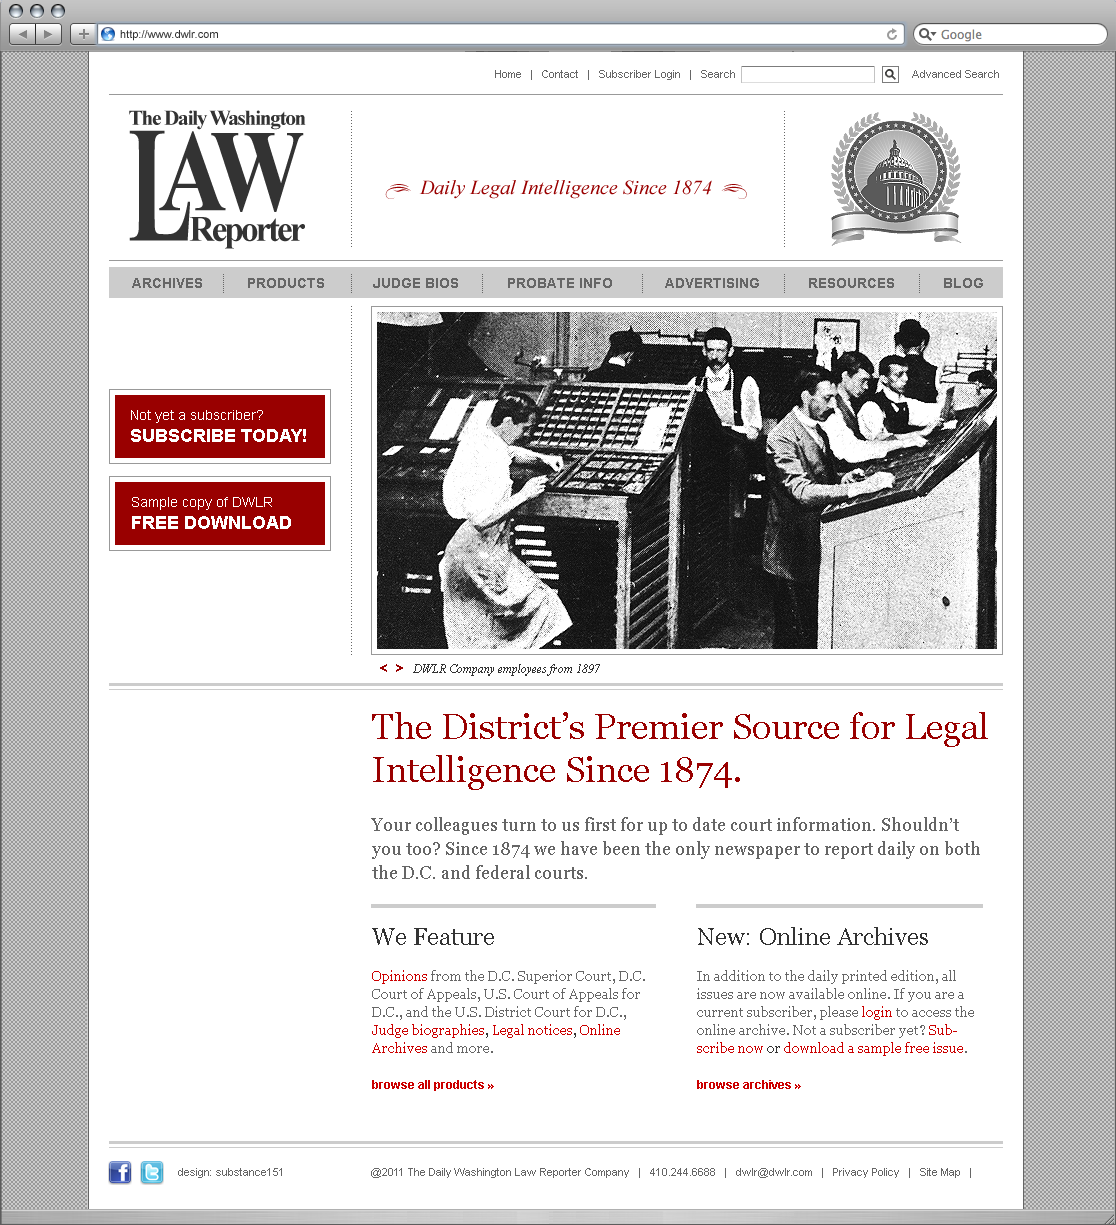 The Daily Washington Law Reporter website redesign